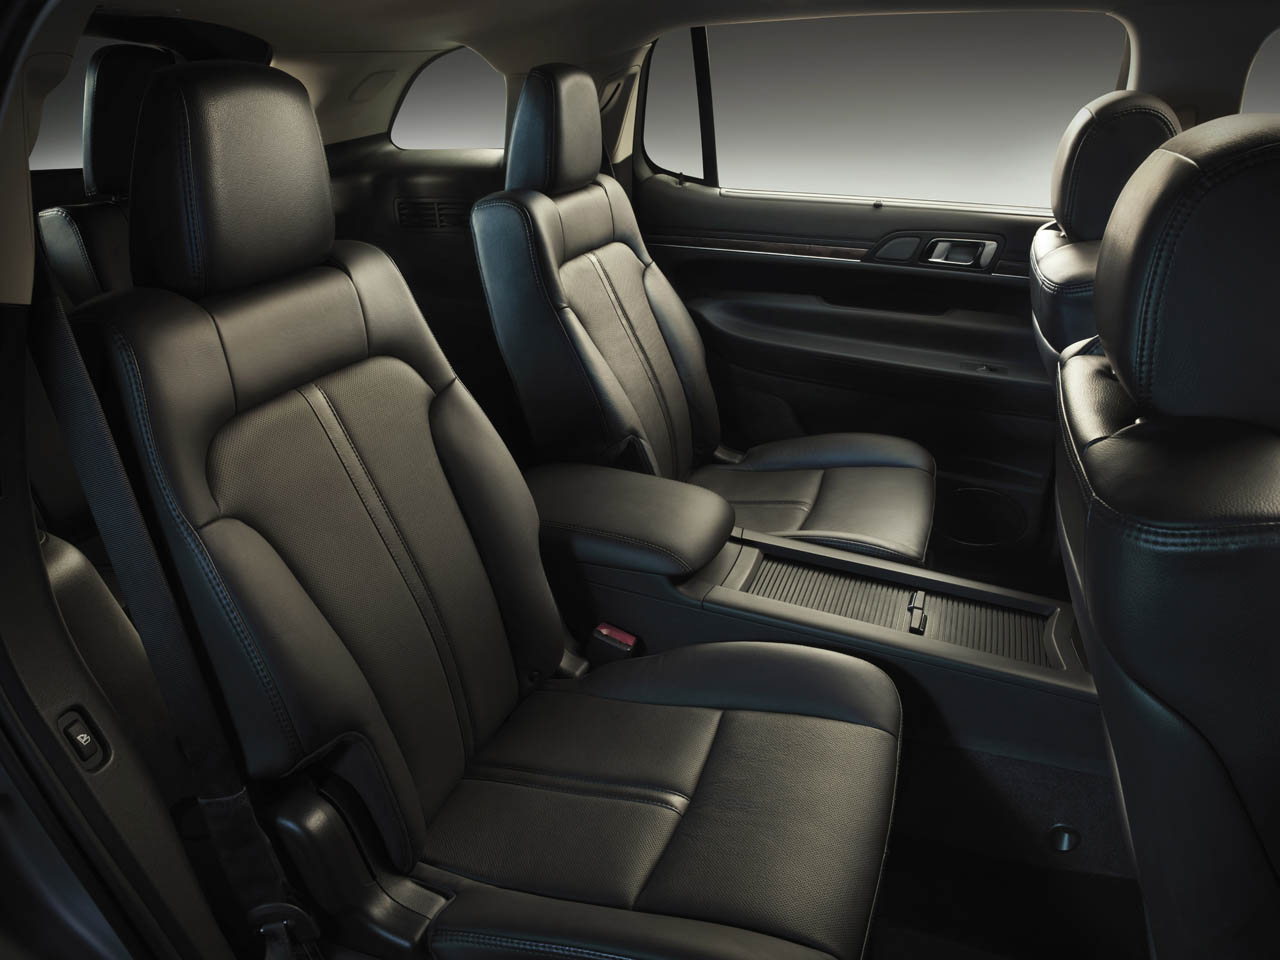 2013 Lincoln MKT 7 2013 Lincoln MKT   A Technical Car Review